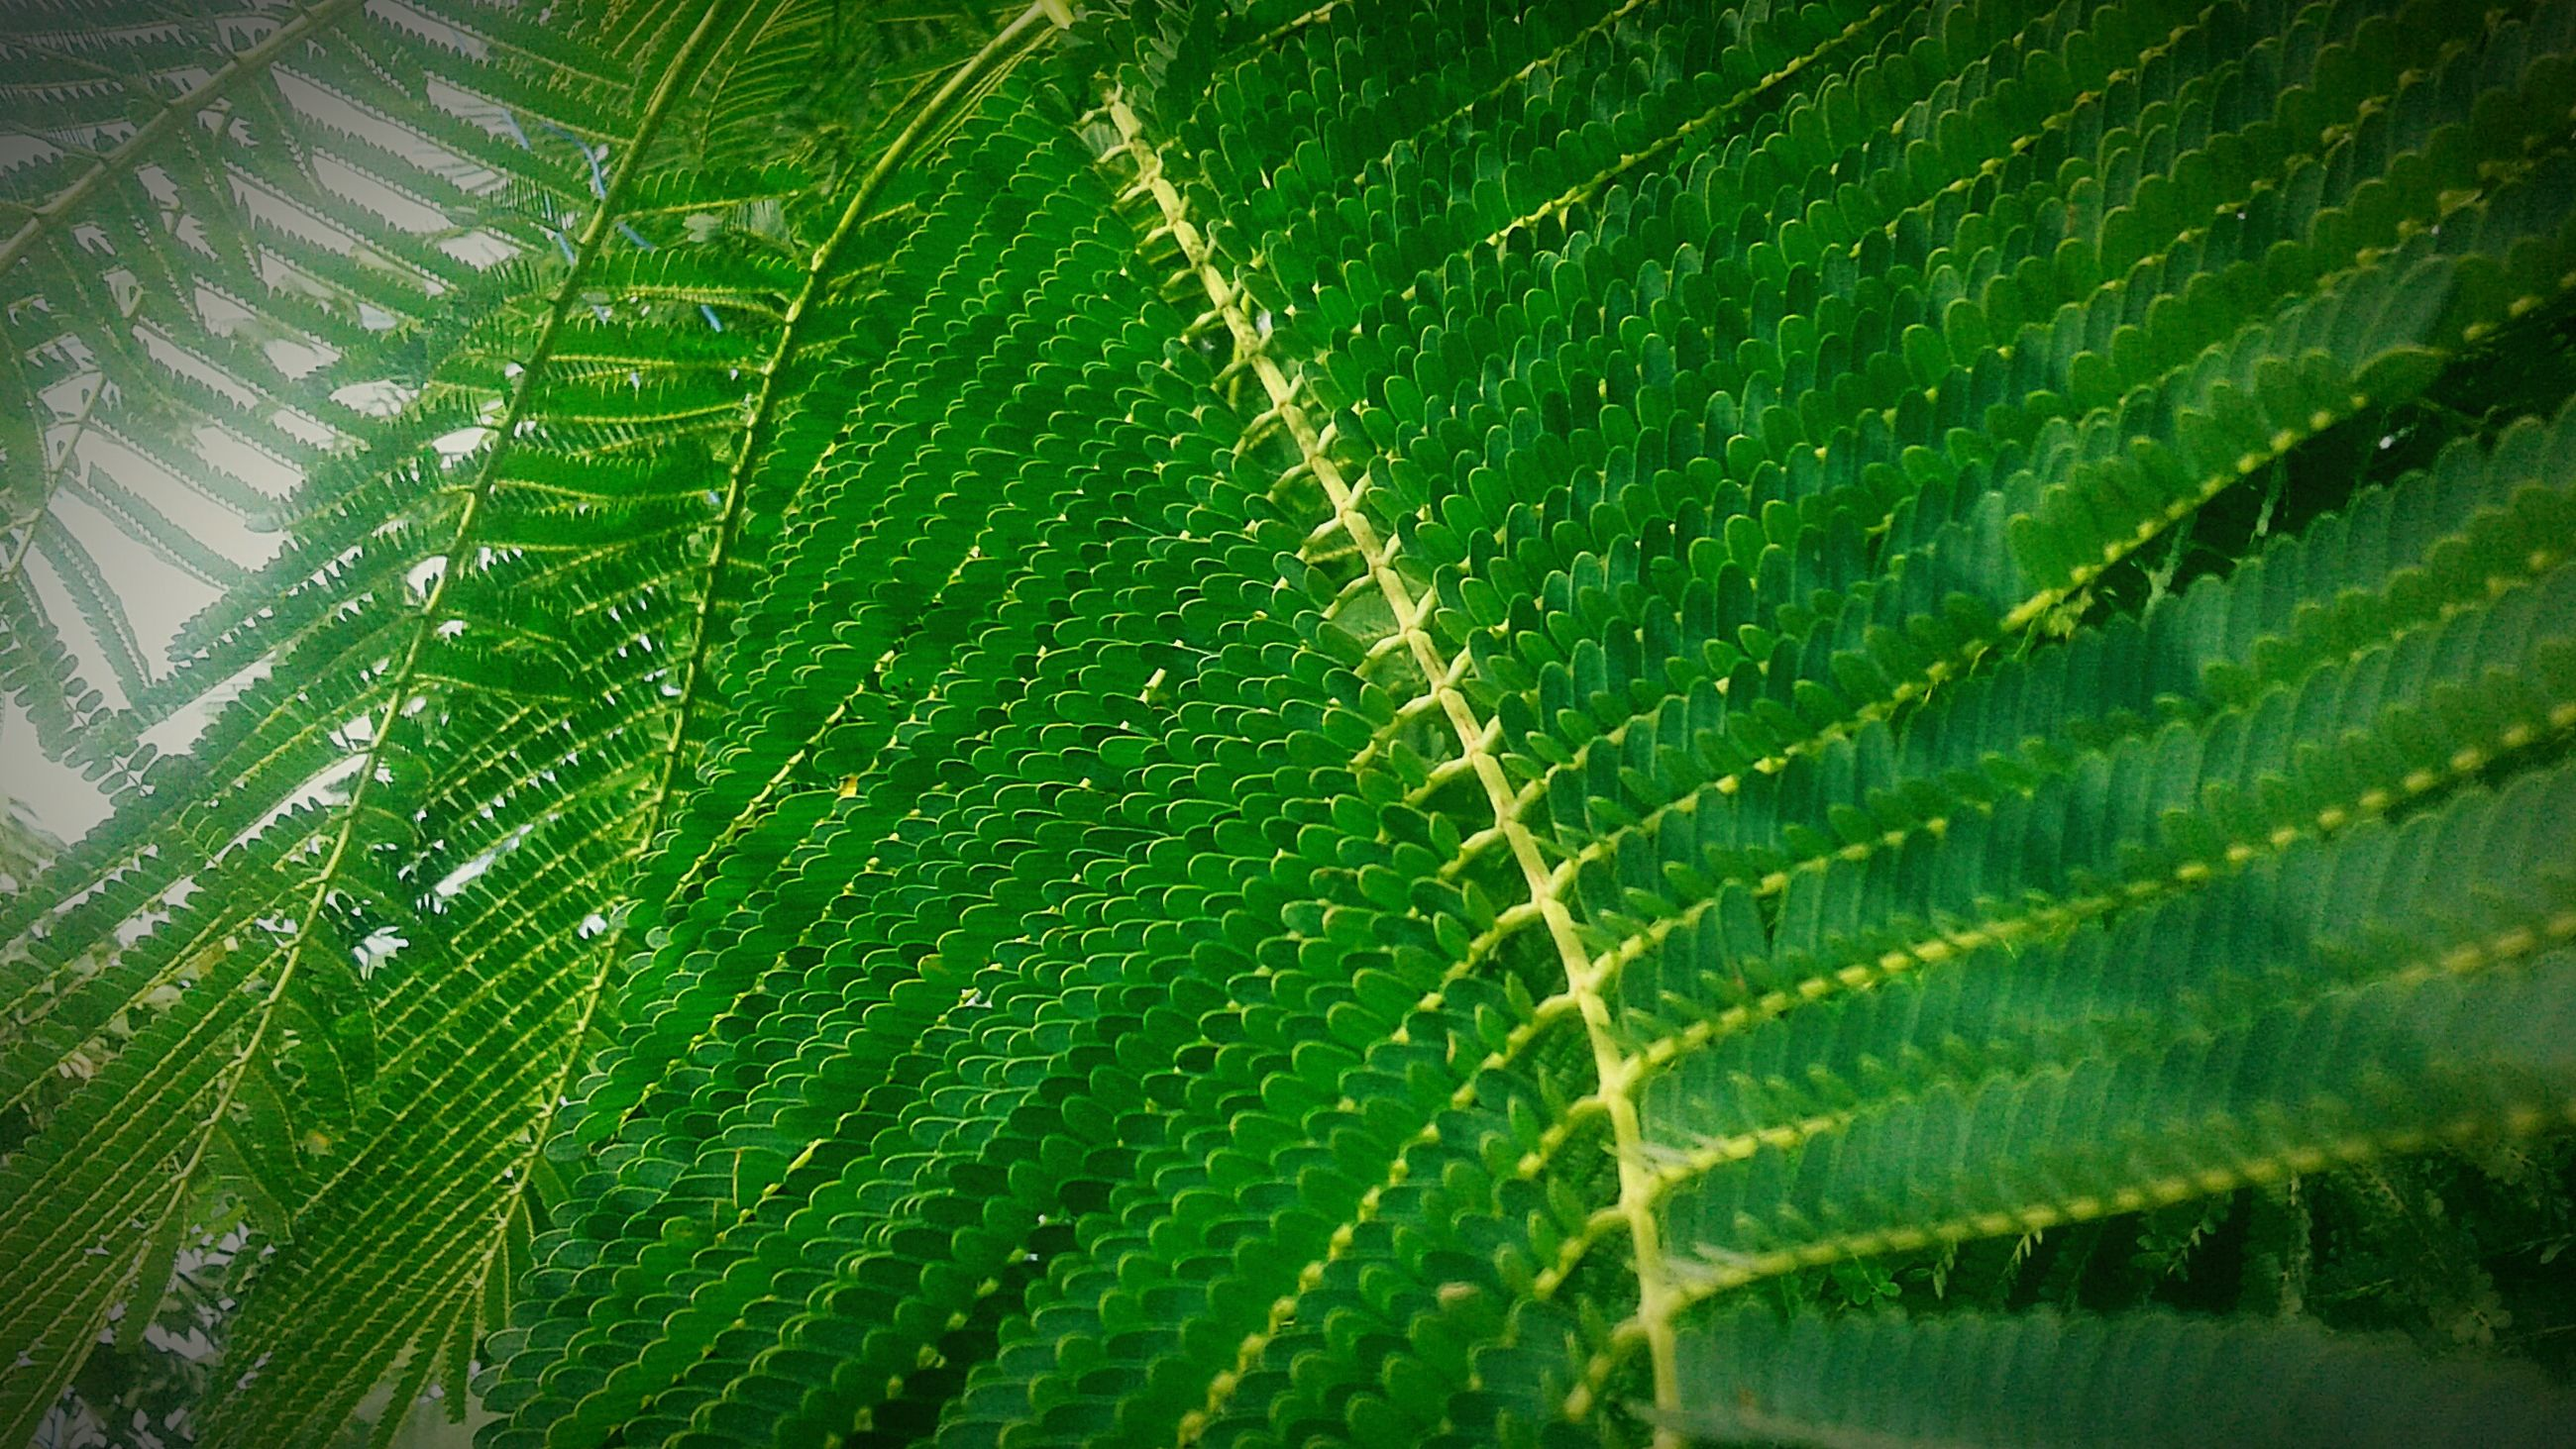 leaf, green color, nature, growth, close-up, day, no people, plant, freshness, beauty in nature, backgrounds, fragility, outdoors